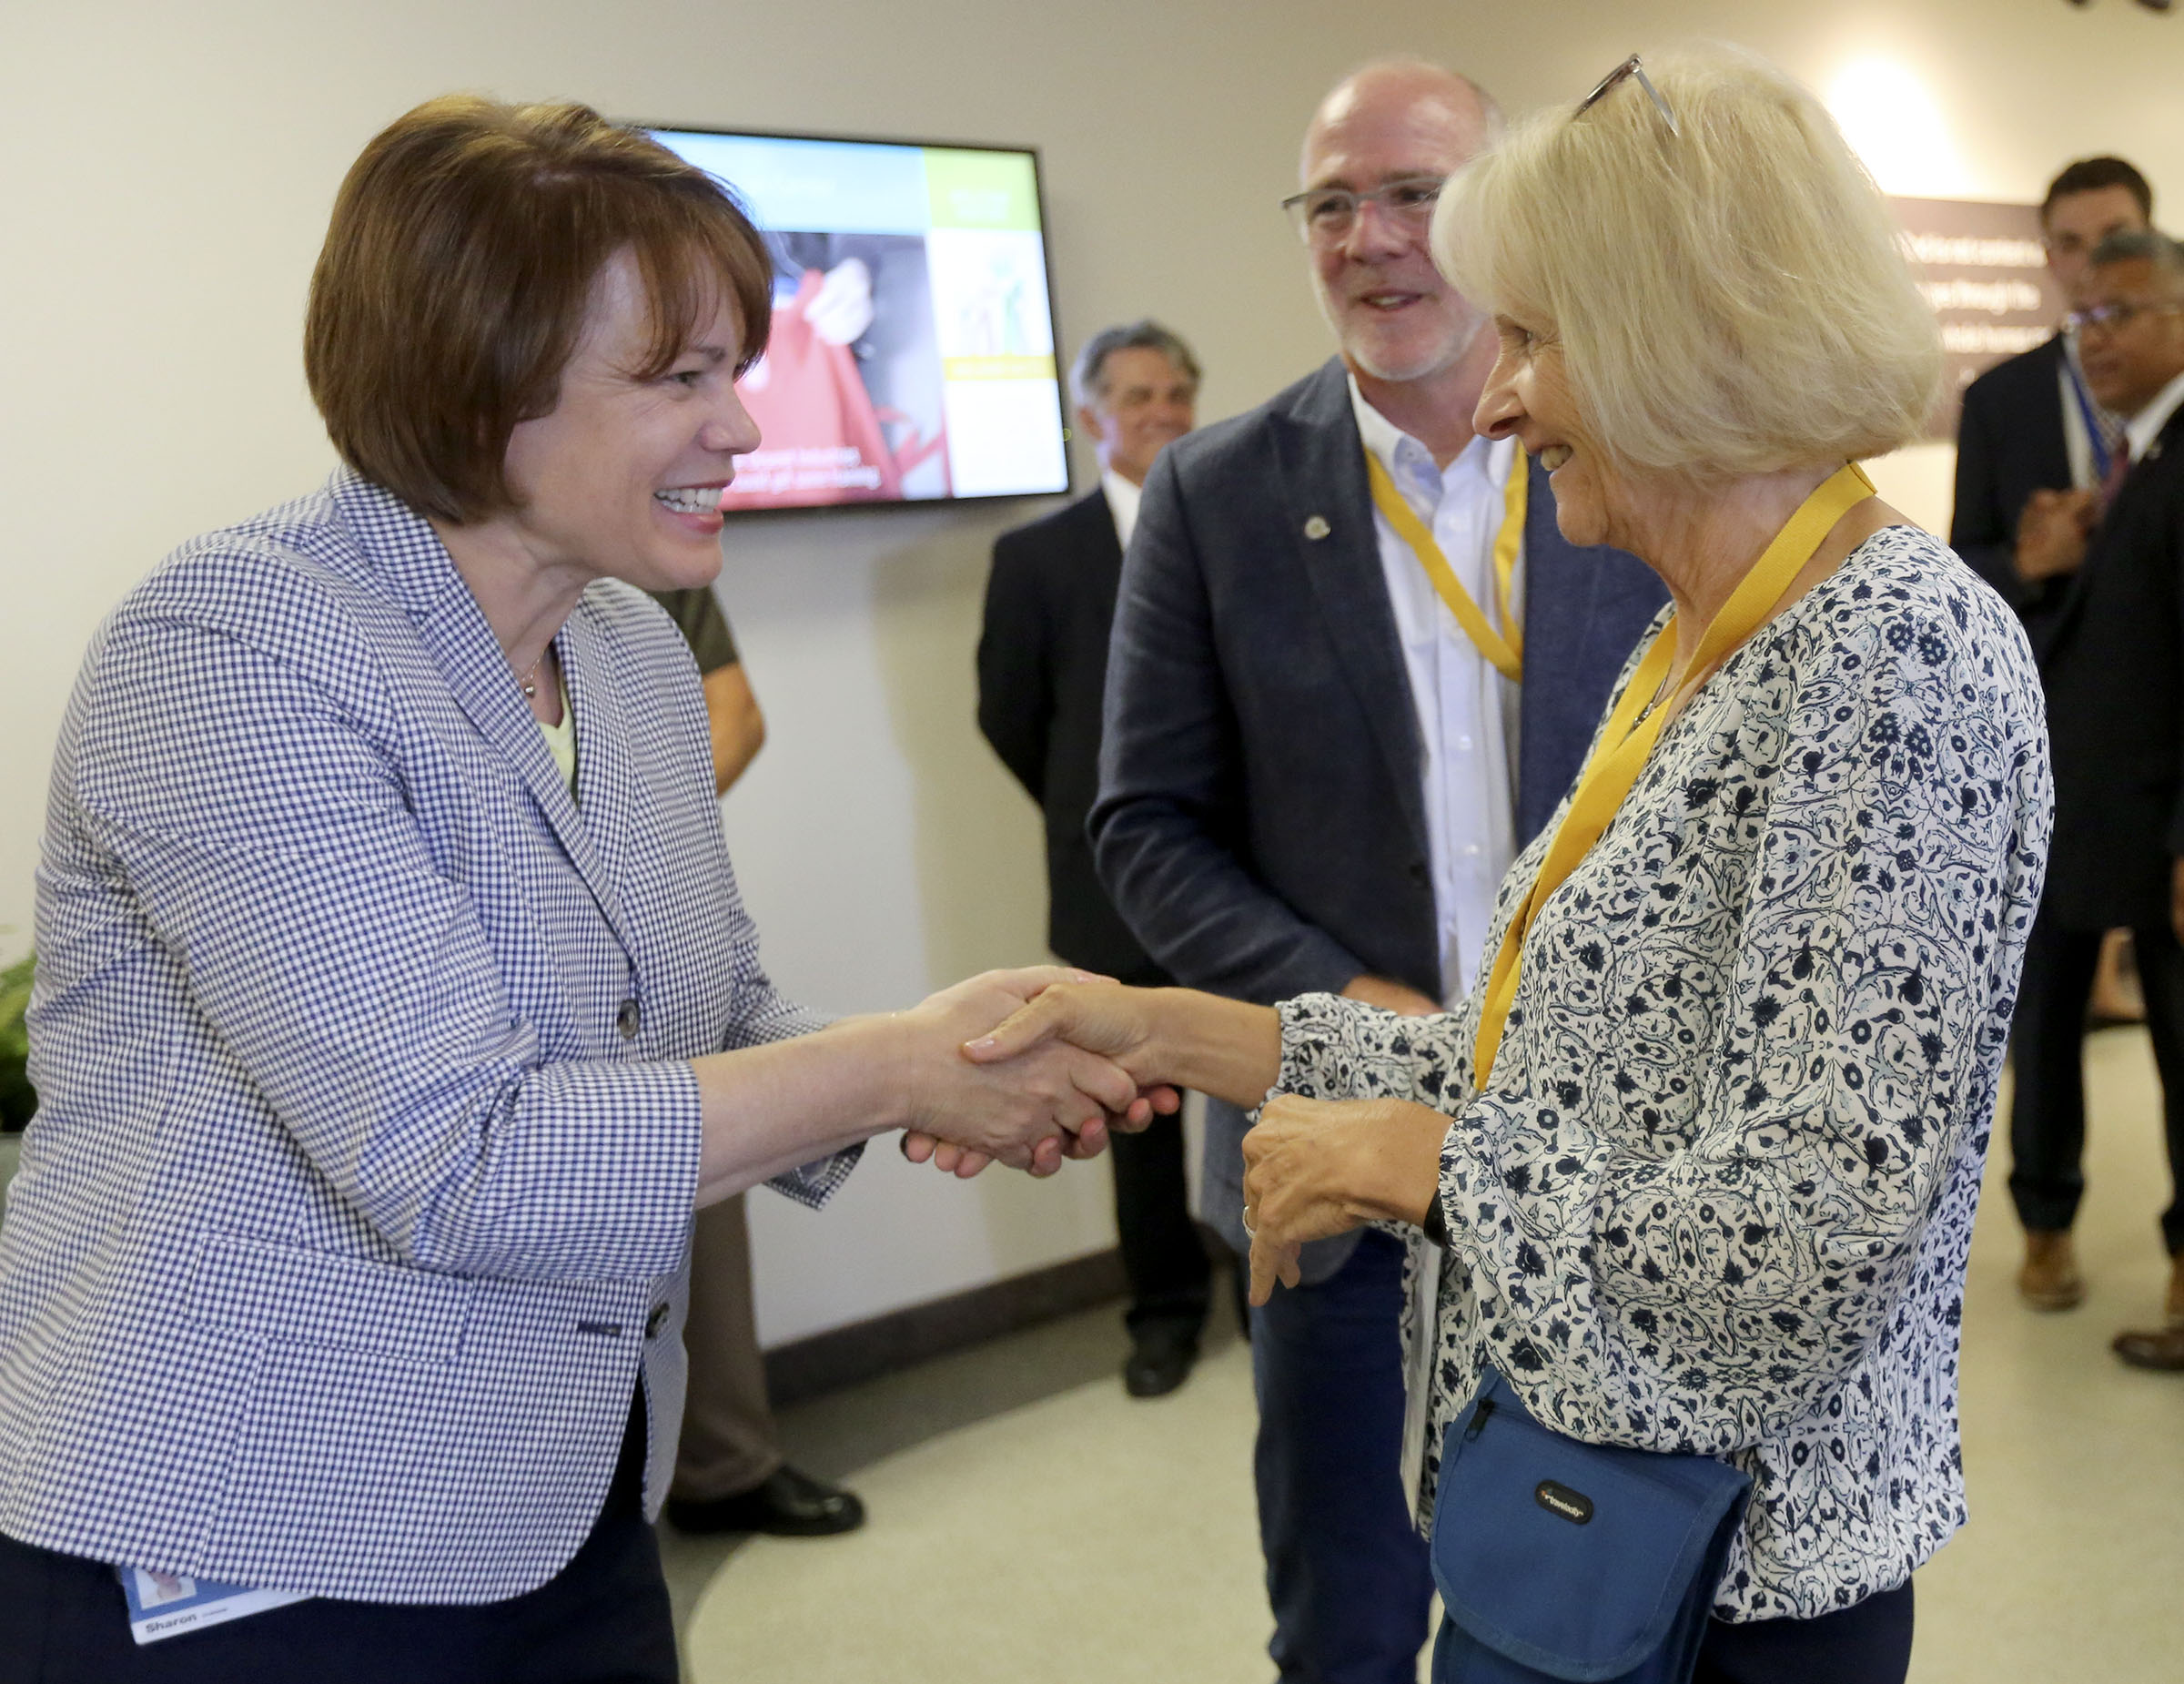 Sister Sharon Eubank, first counselor in the Relief Society general presidency, shakes hands with Wisconsin First Lady Kathleen Evers before giving a tour to spouses of U.S. governors at the Latter-day Saint Humanitarian Center in Salt Lake City on Thursday, July 25, 2019.